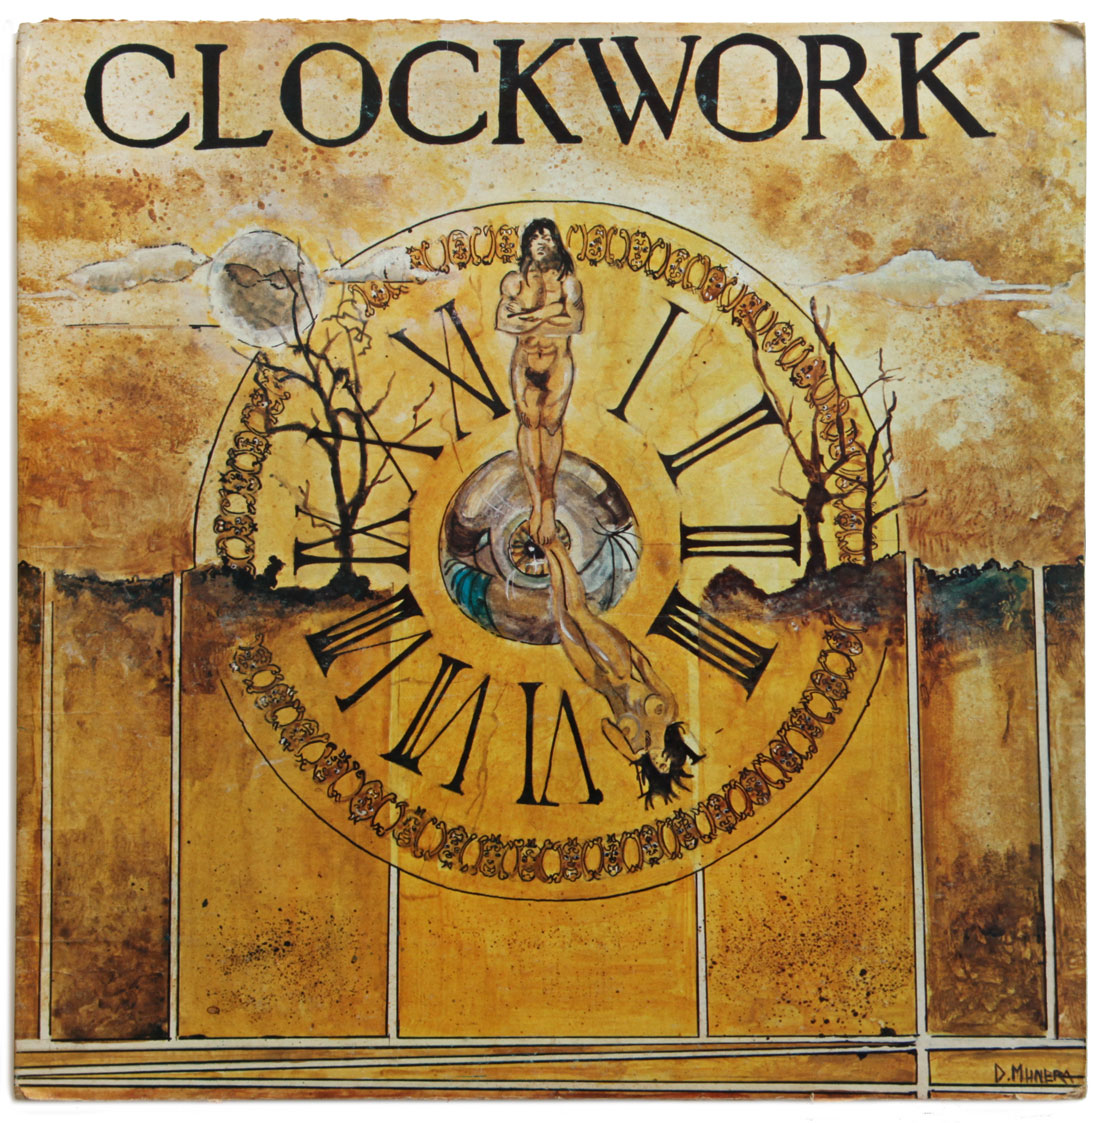 The first Clockwork album (front cover) 1975